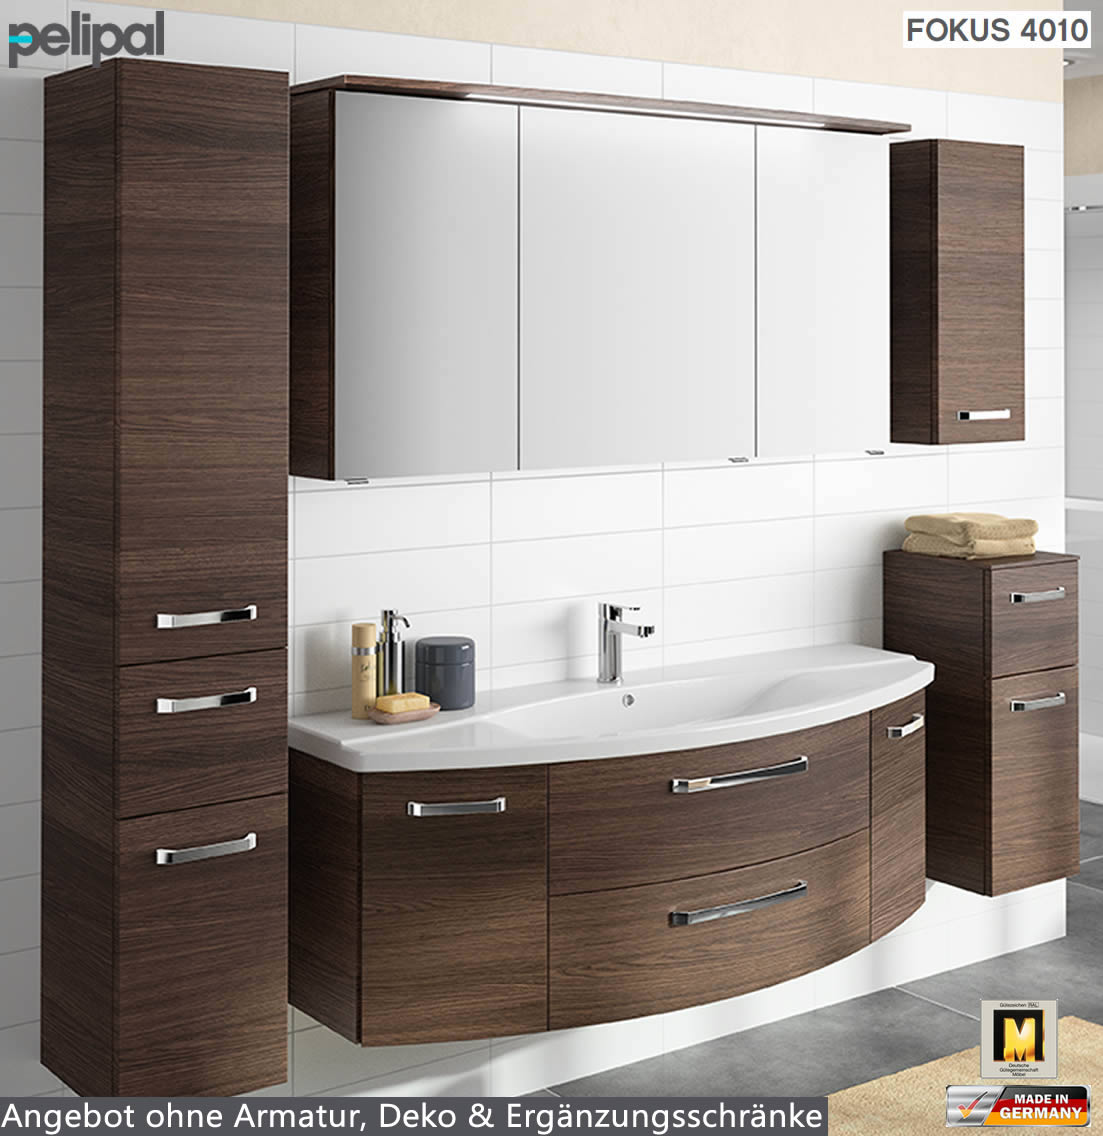 pelipal fokus 4010 badm bel set 3tlg 144 cm mit keramik. Black Bedroom Furniture Sets. Home Design Ideas